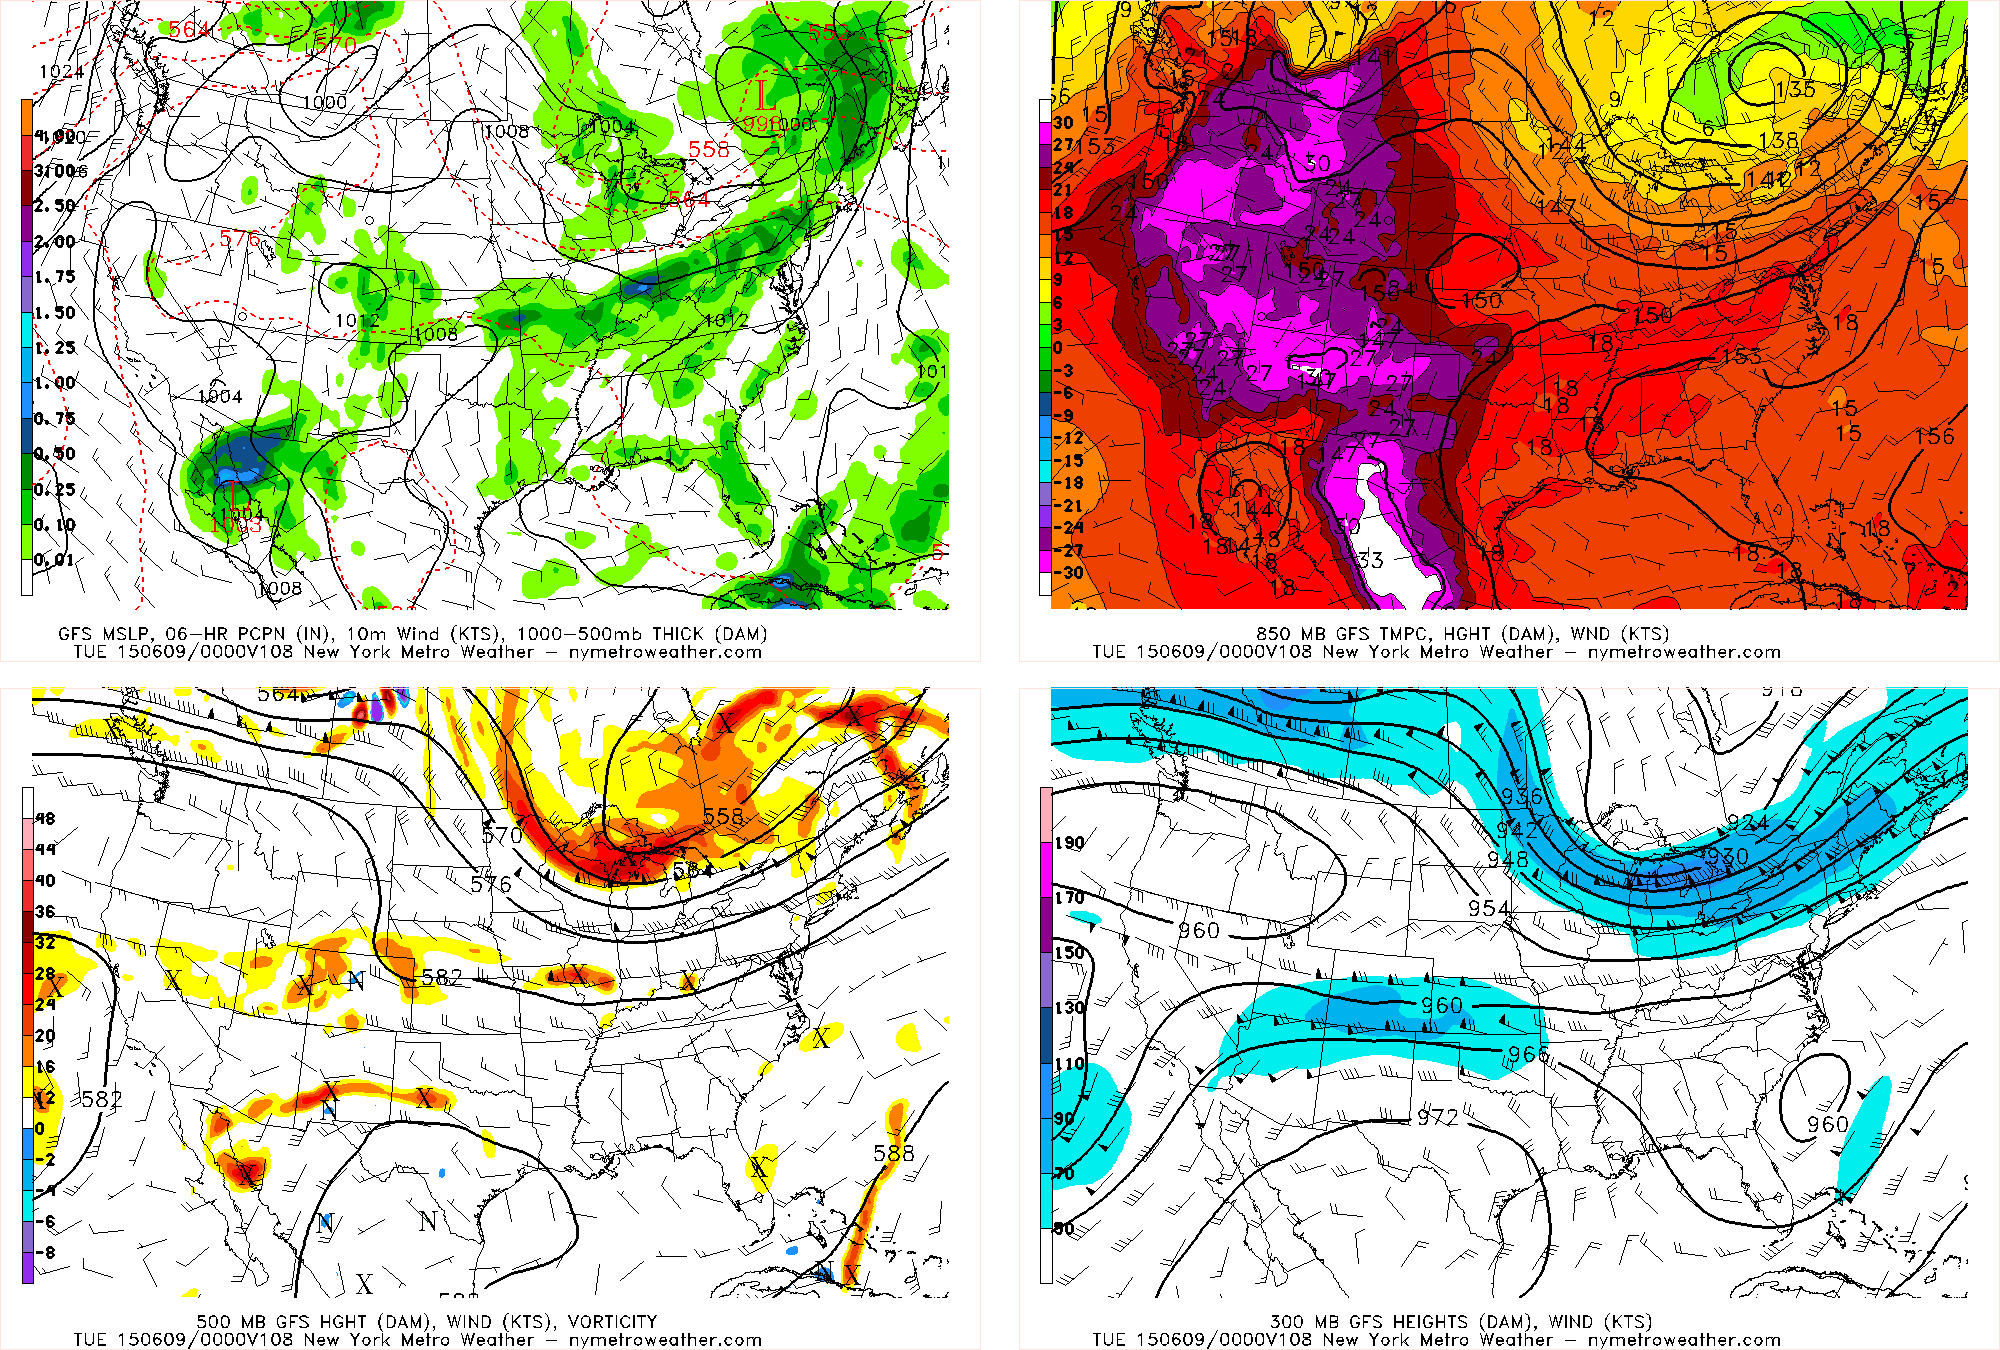 Today's GFS valid for Monday evening shows the ridge out west and to the south, with the trough diving into the Great Lakes with plenty of energy. However, the best energy appears to be lagging well to our west.